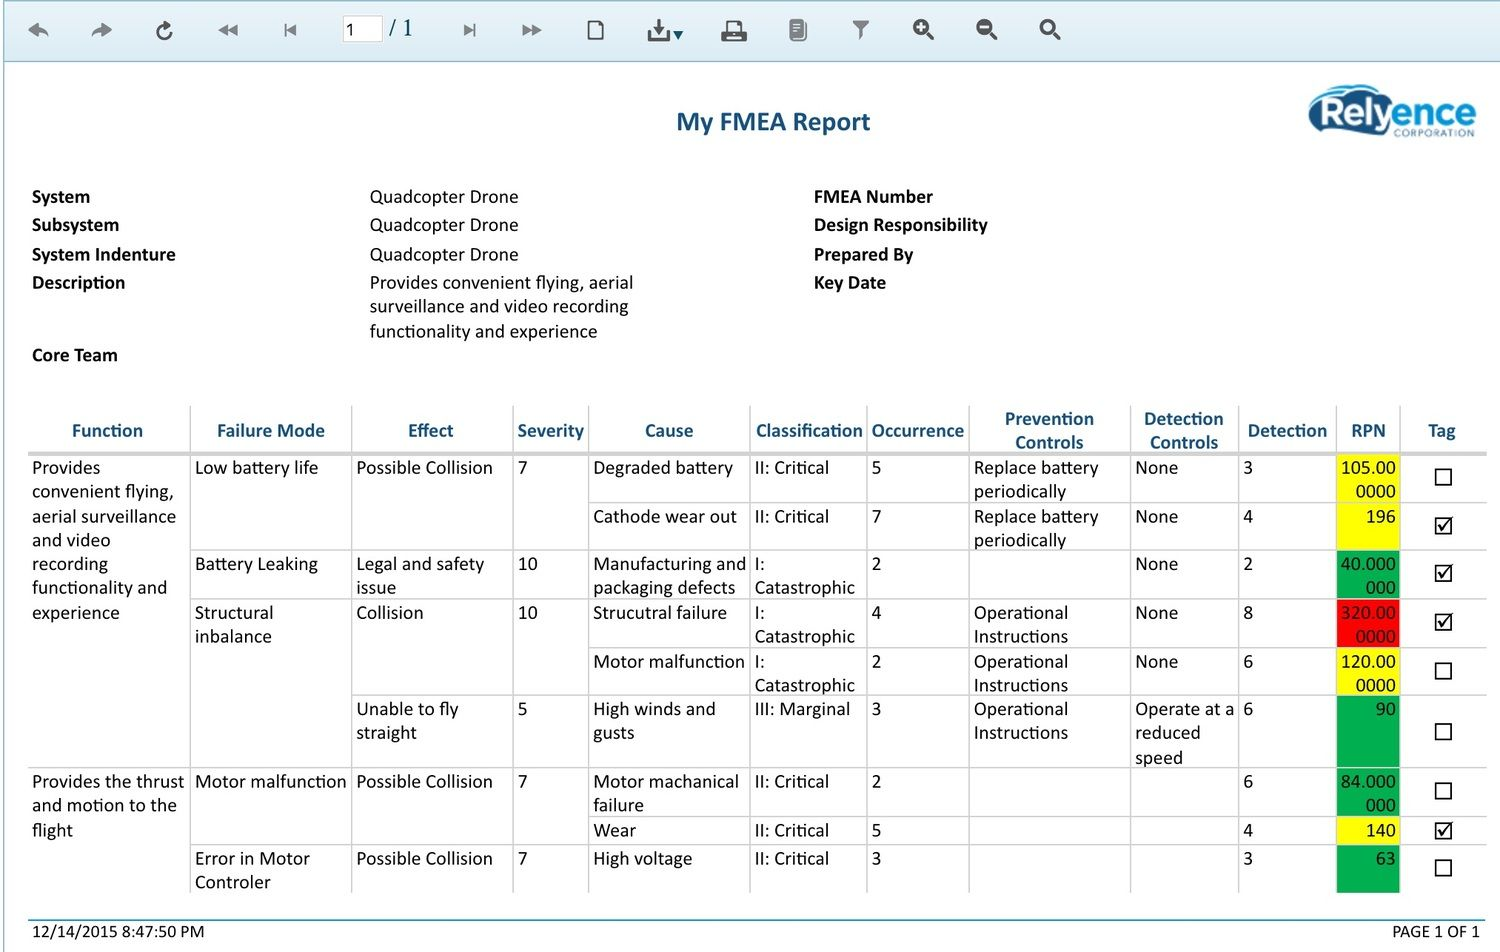 medium resolution of fmea and fmeca customizable reports provide visibility to aid in process and design improvement